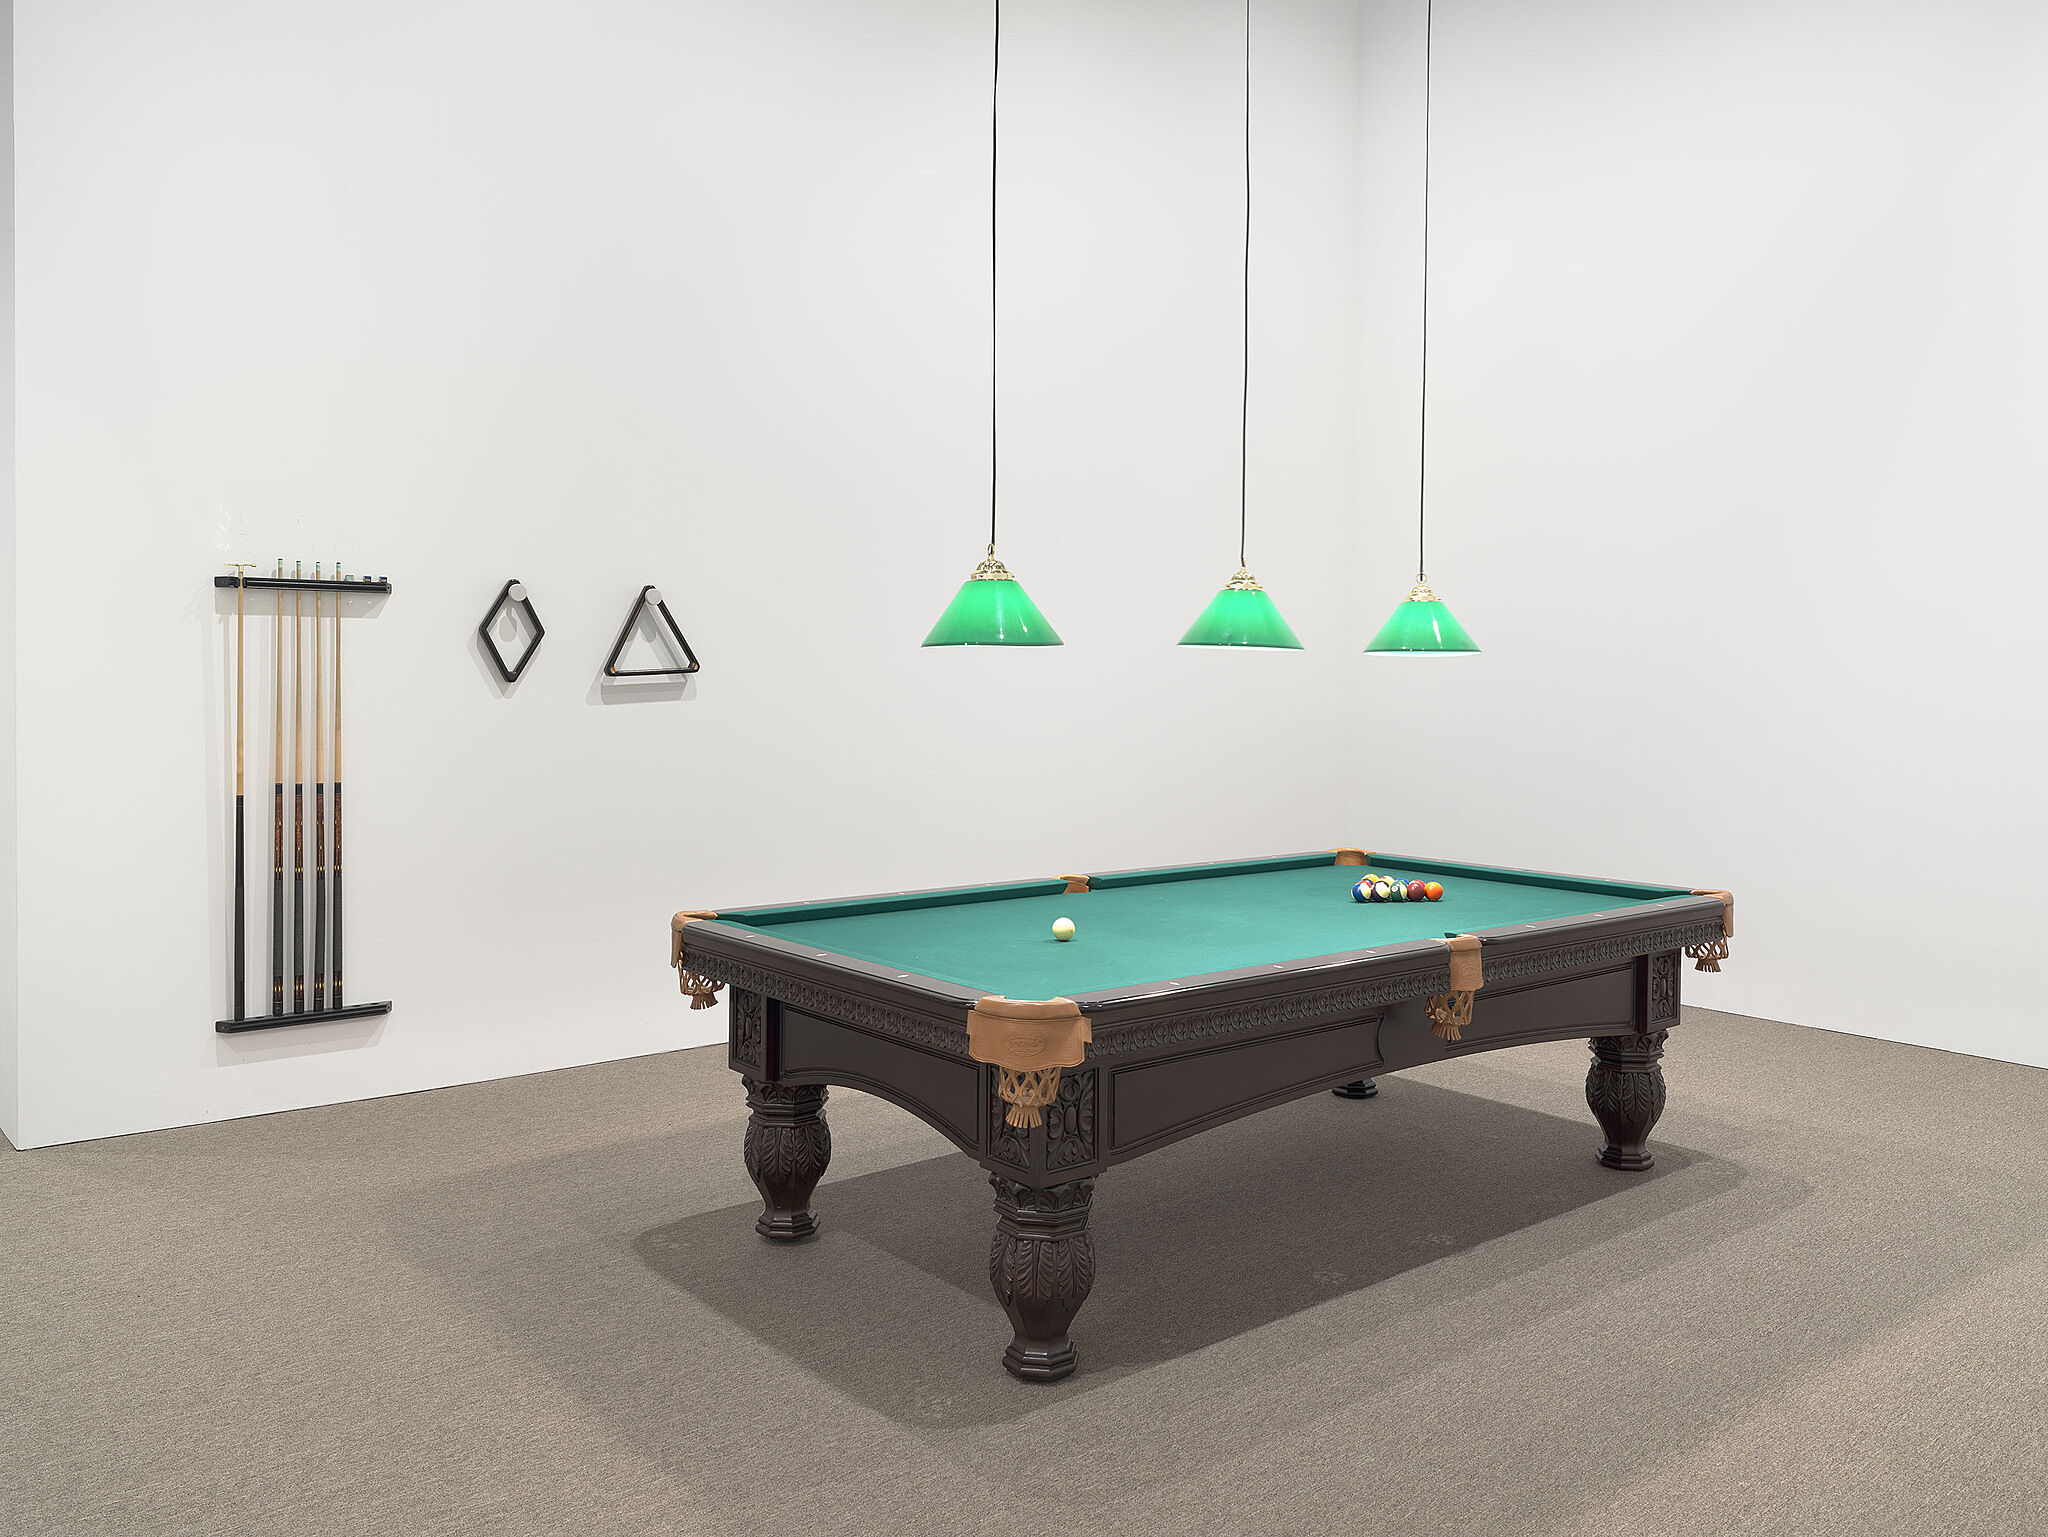 "Installation view of Oiticica's piece Appropriation—Snooker Room, after Van Gogh's ""Night Café"", featuring a pool table a it's fixtures"